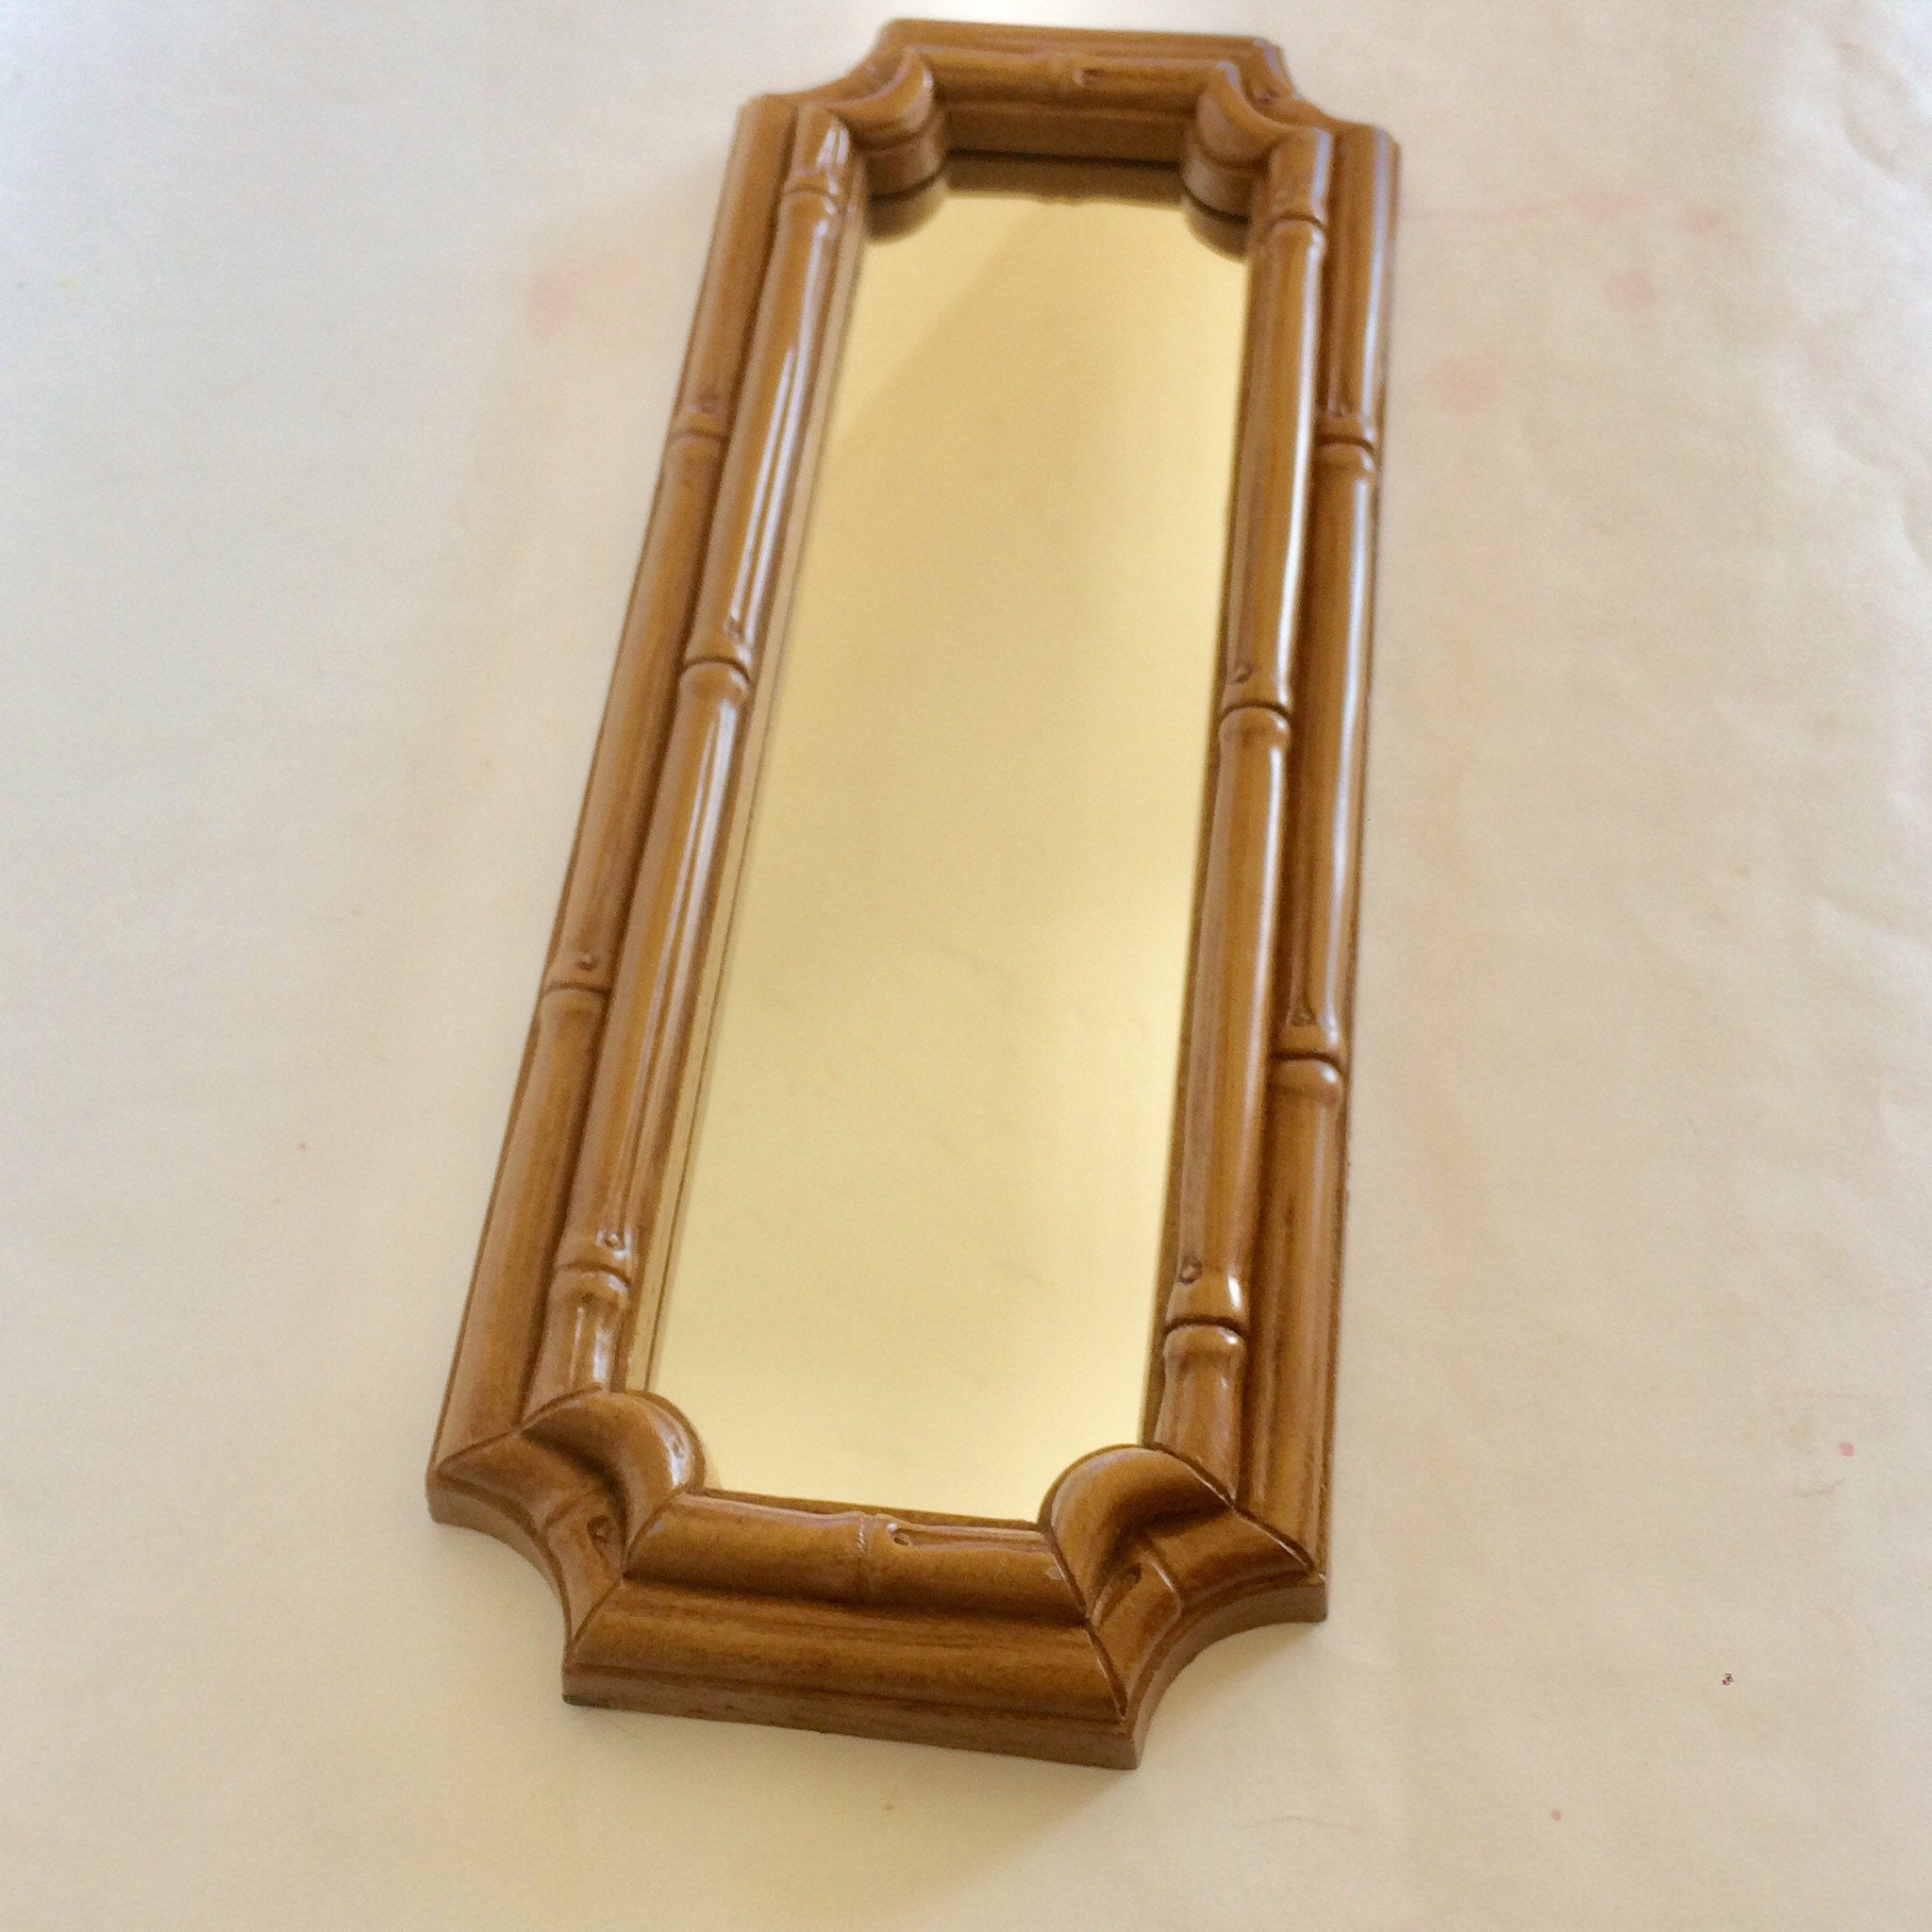 Lightweight Wall Mirrors Pertaining To Most Recently Released Vintage Tiki Mirror Narrow Wall Mirror Classic Hawaiian Wall Decor Faux Wood Rantan Bamboo Mirror Light Weight Mirror Wall Mirror (View 20 of 20)